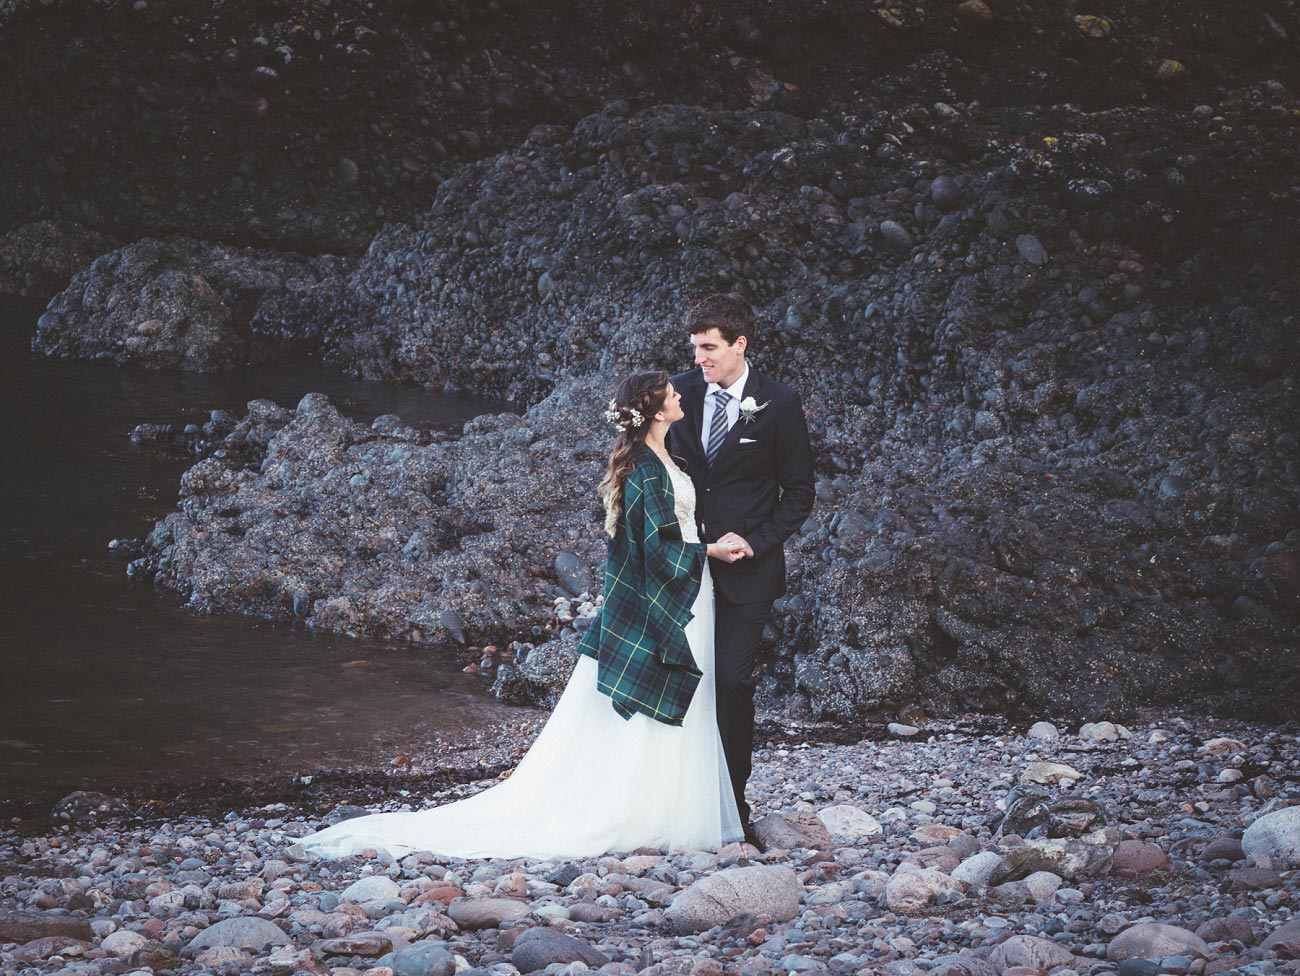 wedding photographer aberdeen scotland raemoir house dunnottar castle 0050